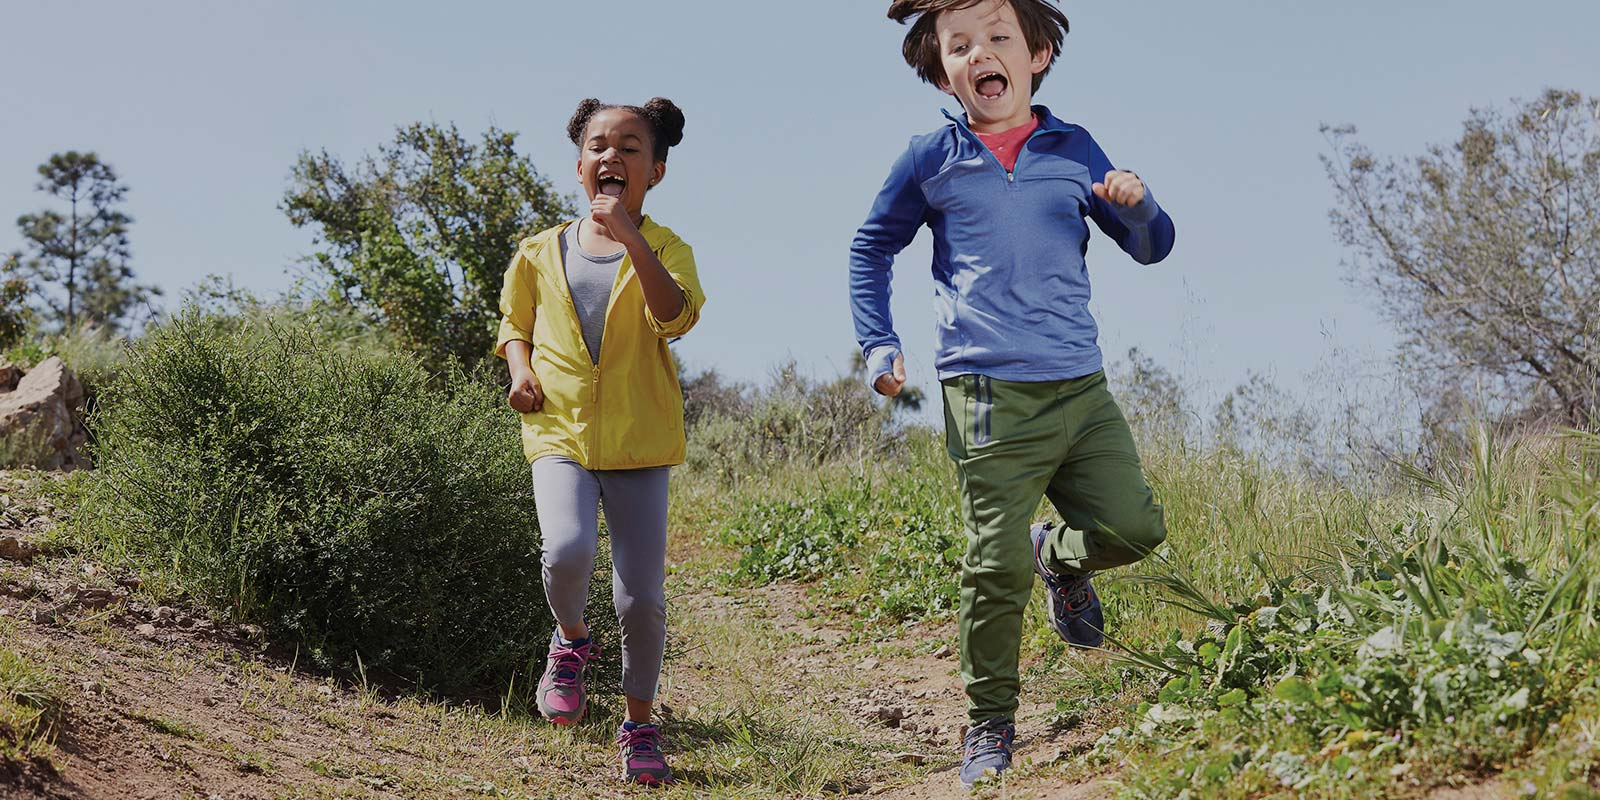 Children running down a hill with their mouths wide open having fun with trees and bushes in the background